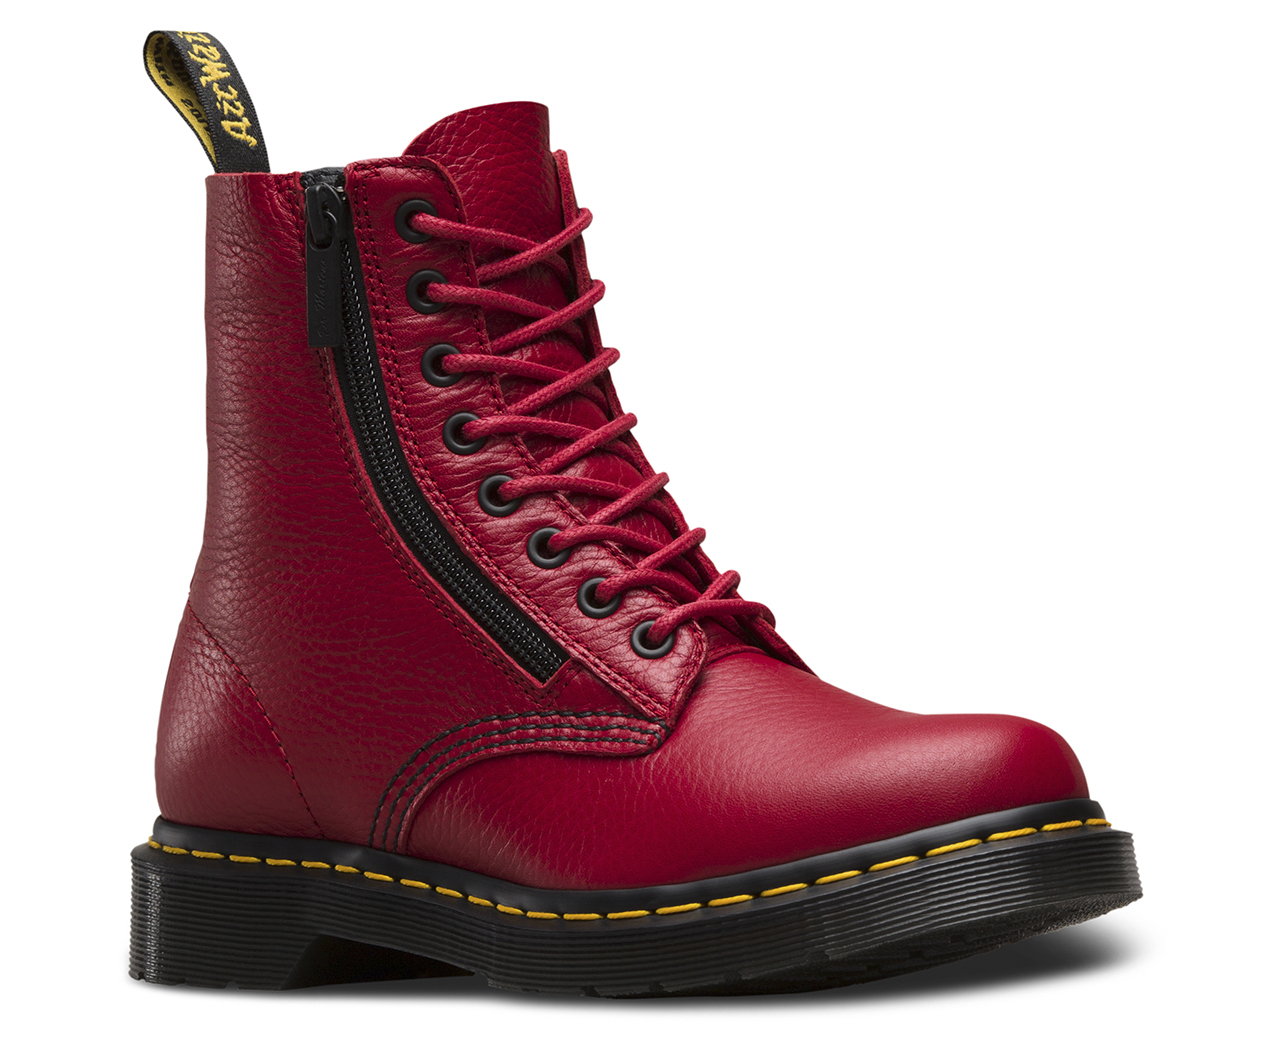 1460 pascal w zip aunt sally women 39 s boots official dr martens store. Black Bedroom Furniture Sets. Home Design Ideas